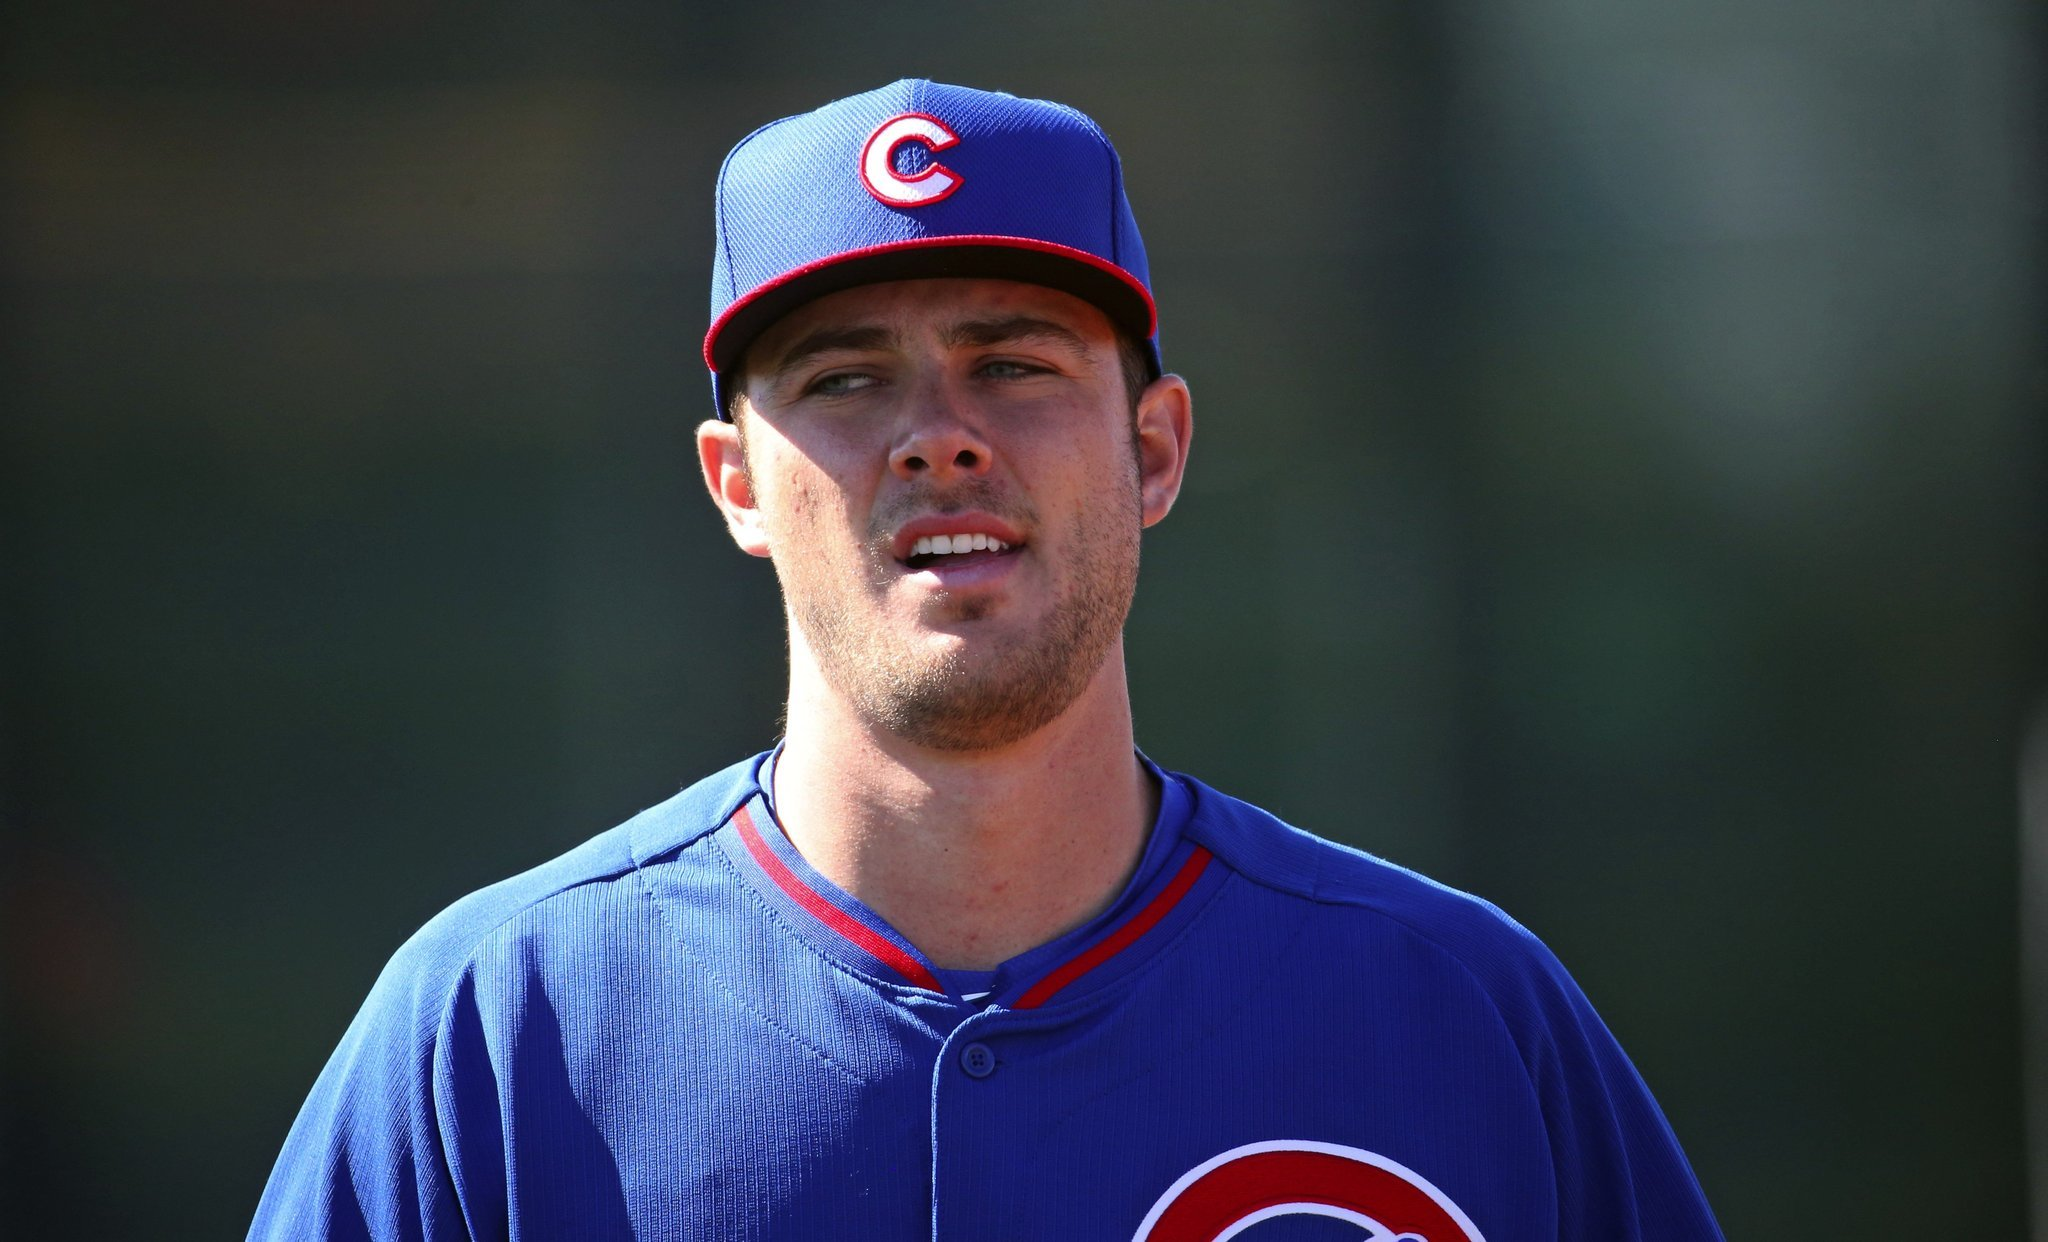 Kris Bryant hitless for Iowa Cubs; service time date looms Hoy